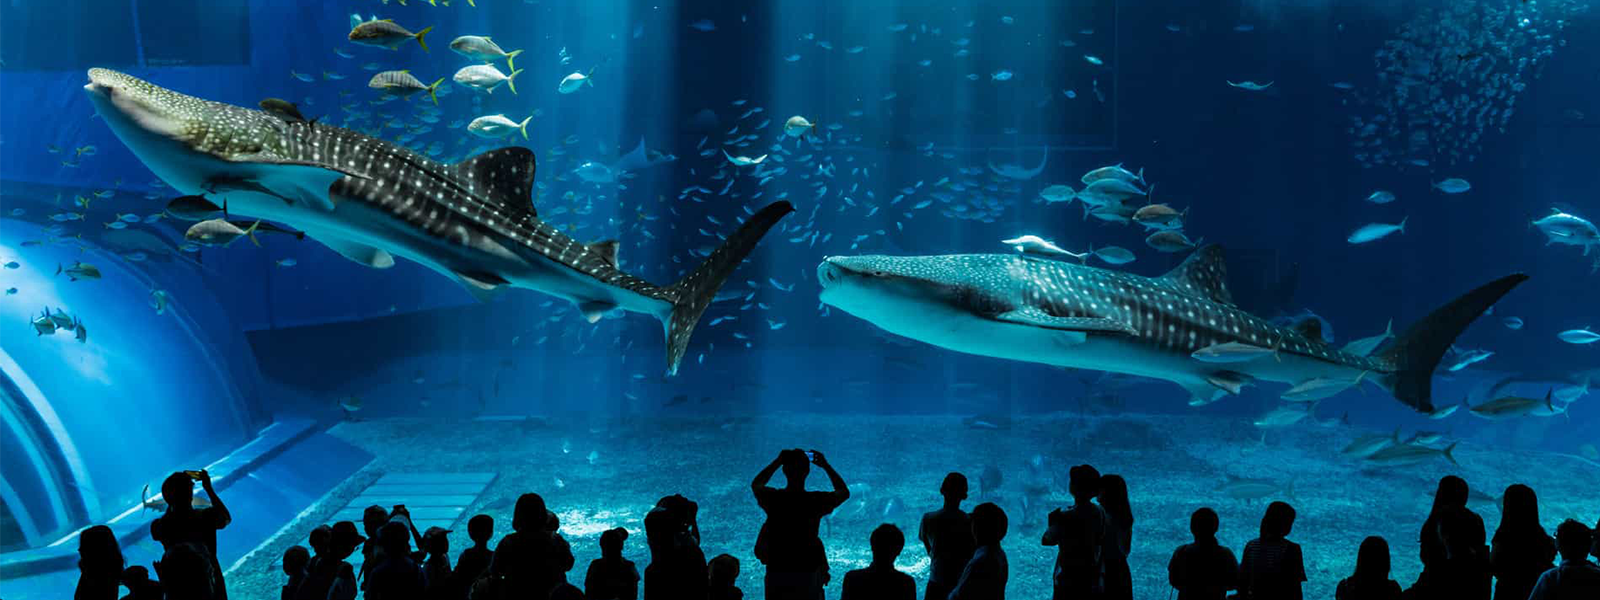 10 plus beaux aquariums du monde, Hengqin en Chine